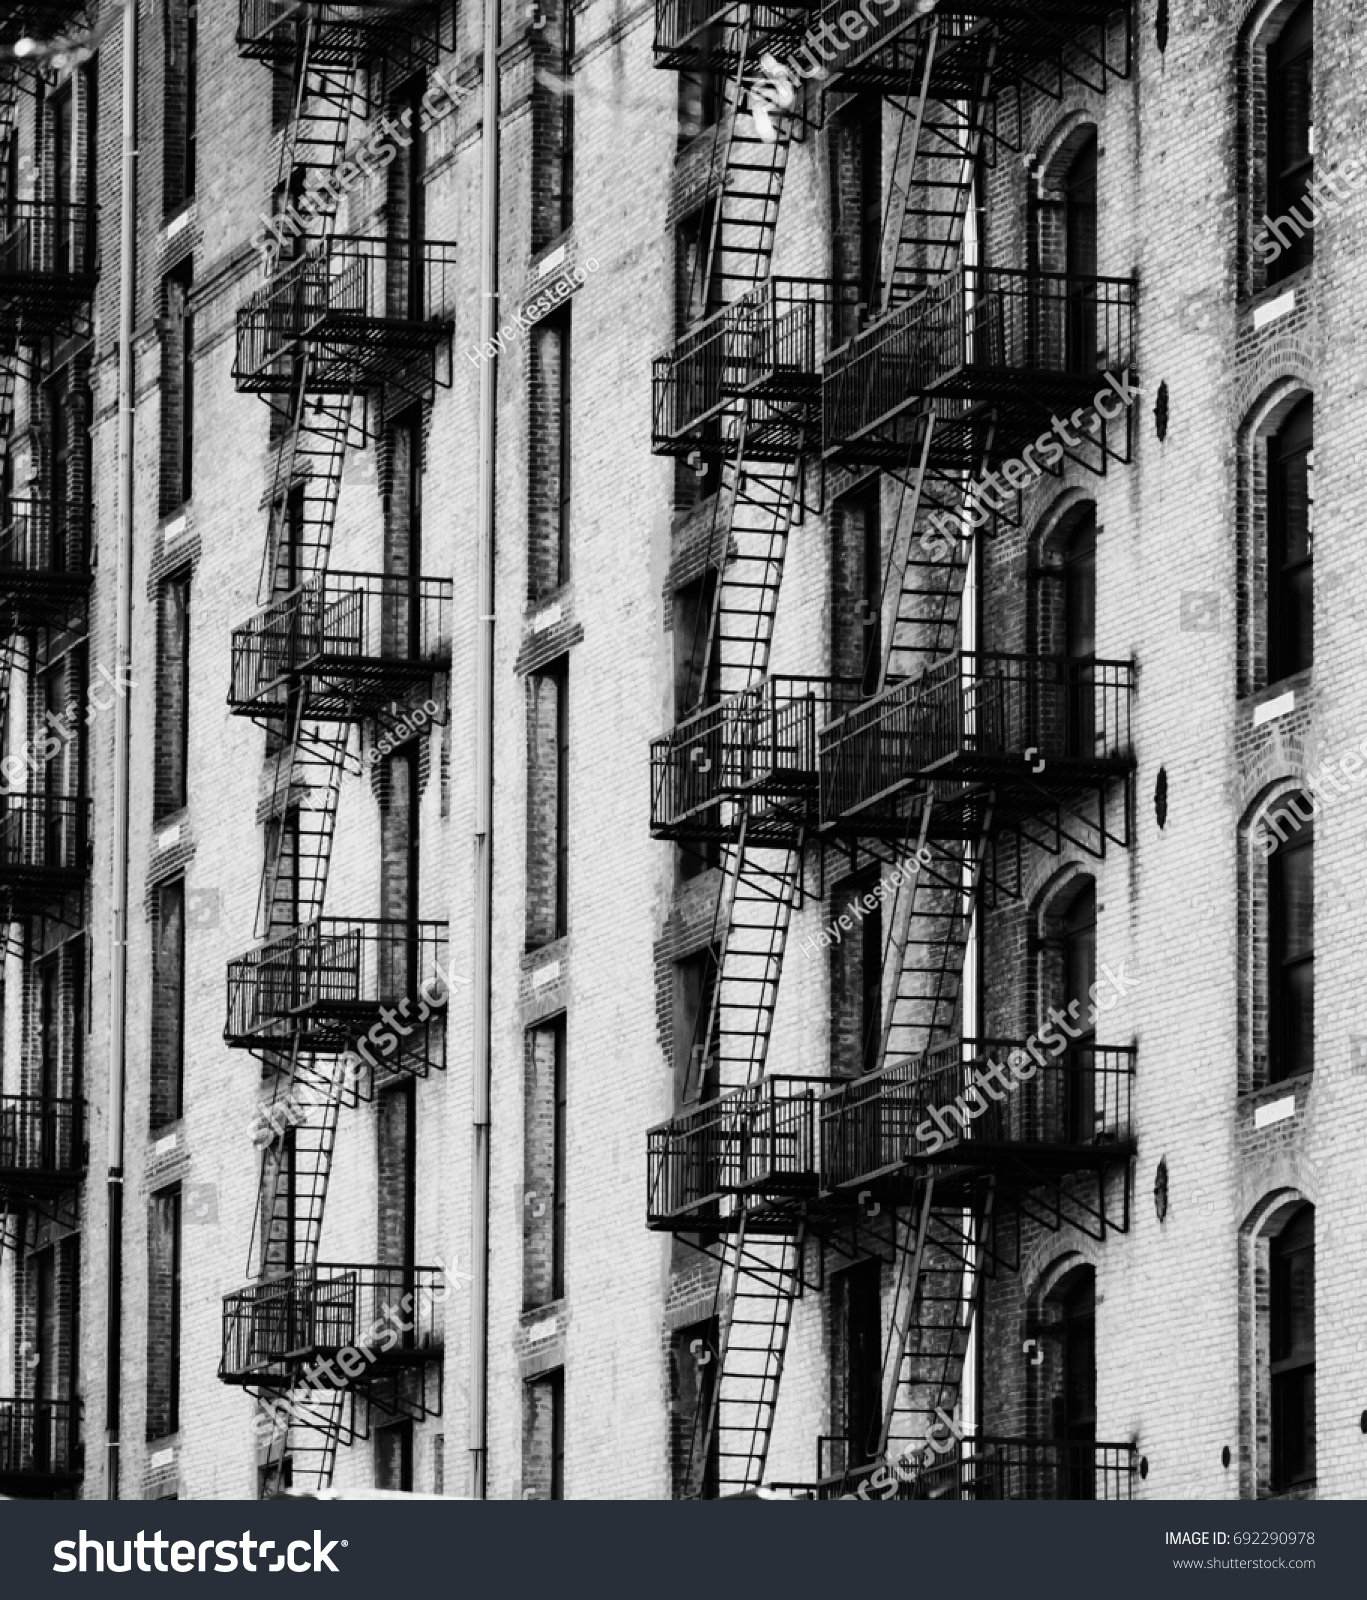 Design details of modern and classic architecture in manhattan photographed in high contrast and black